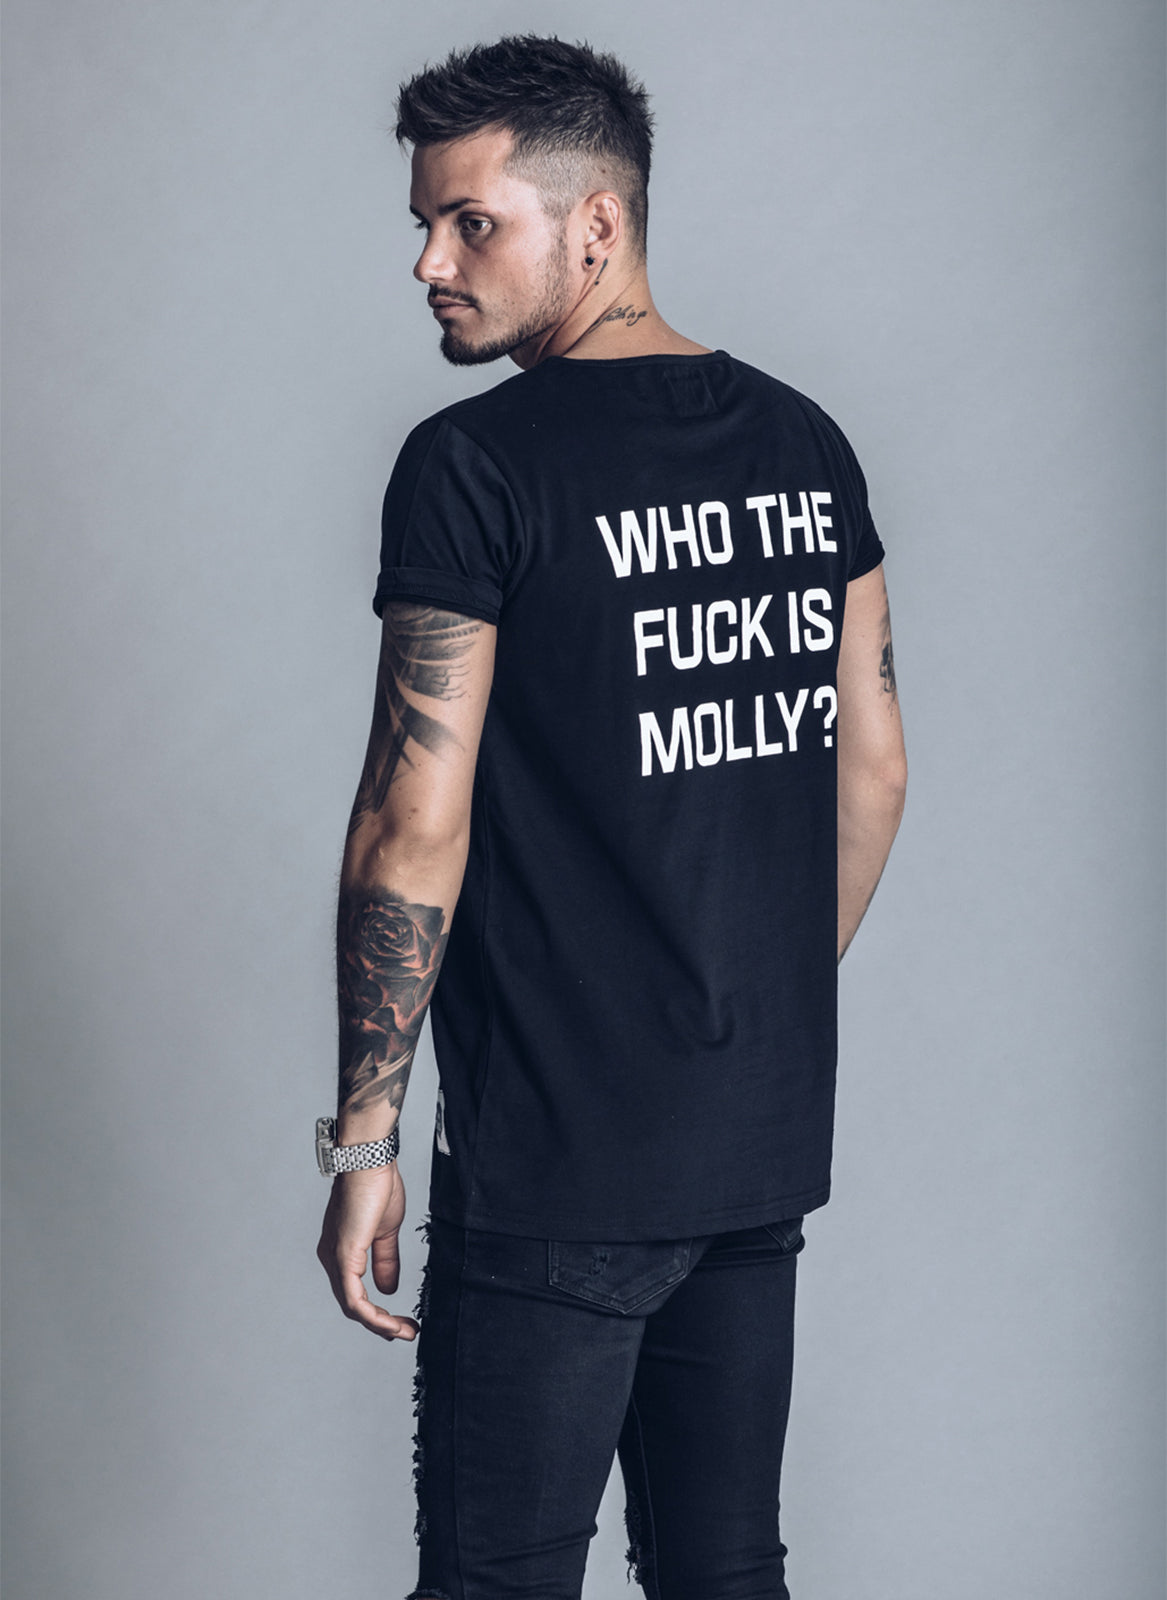 Who The F*ck is Molly - Black T-shirt - We Love Techno